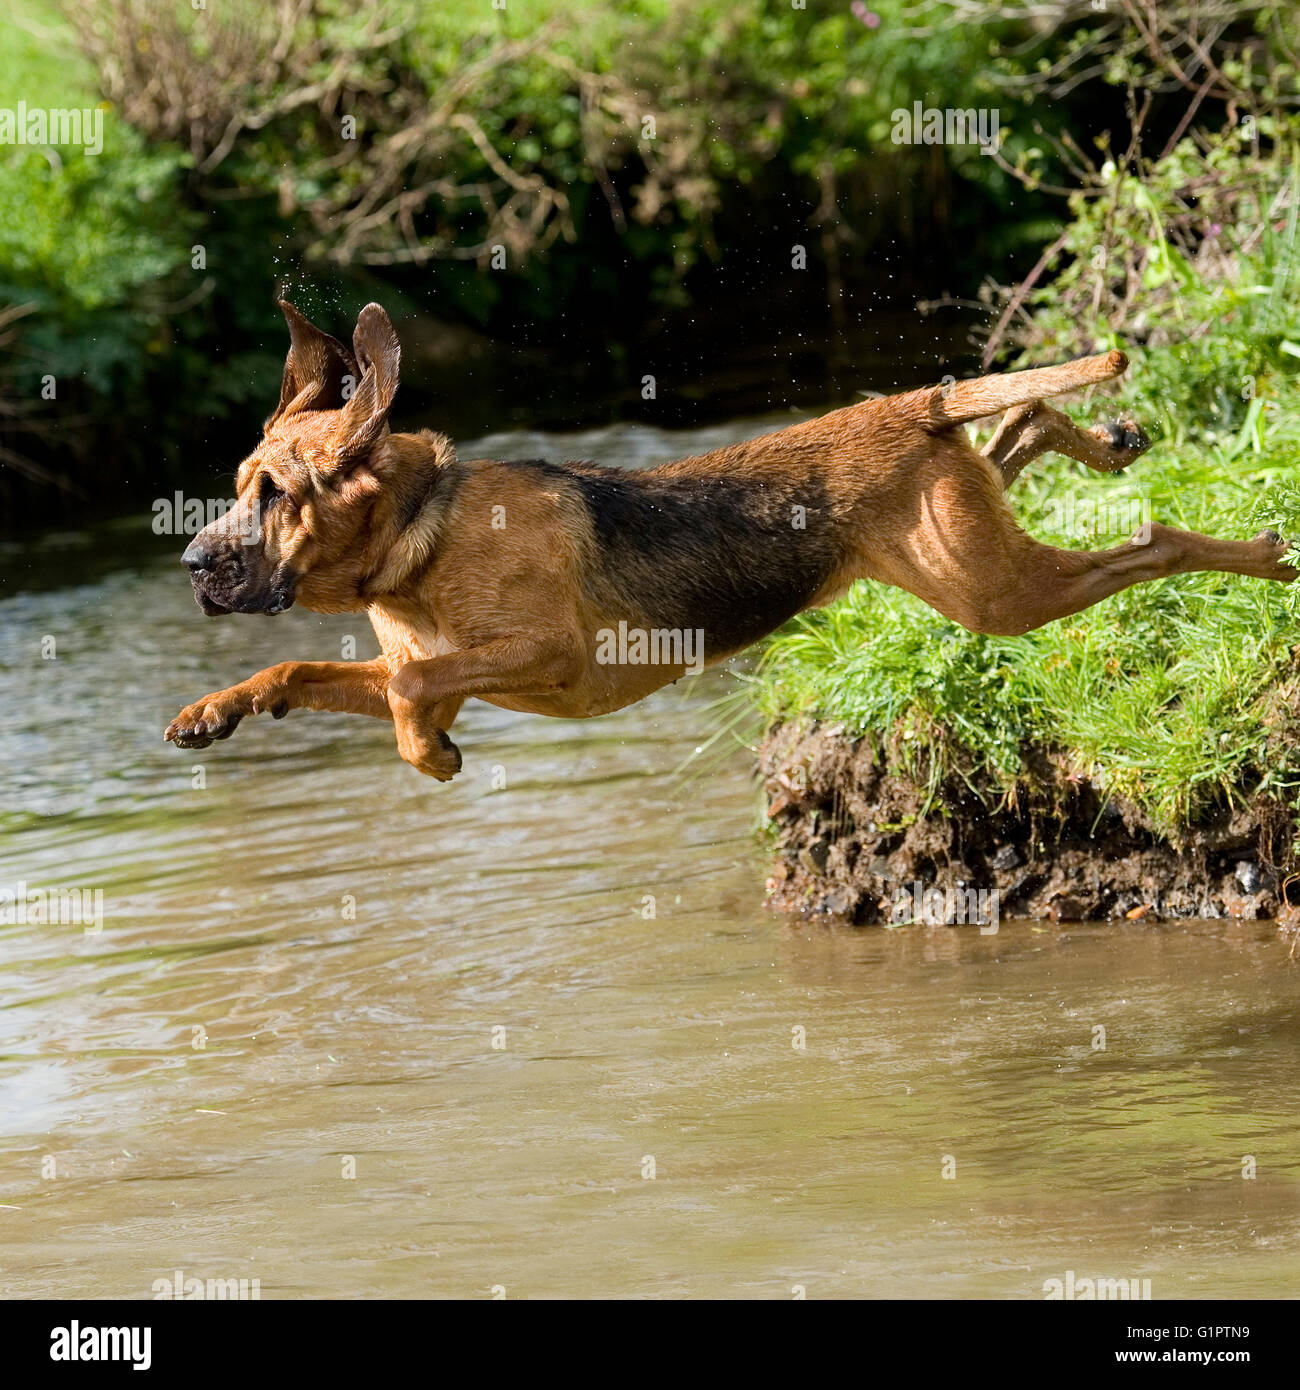 bloodhound leaping into lake - Stock Image